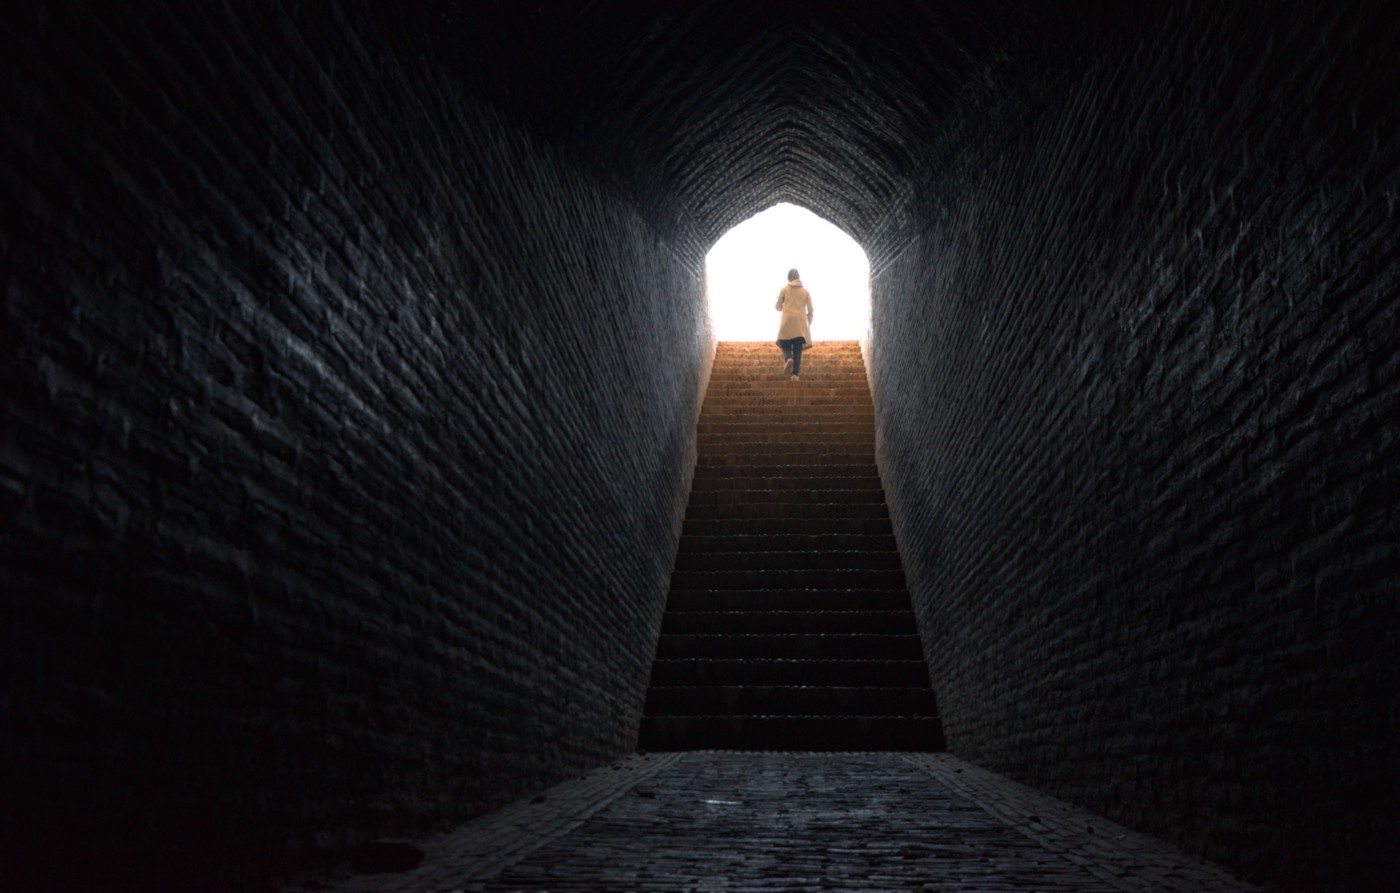 A lone woman walks with confidence up stairs coming out from dark tunnel into bright light.